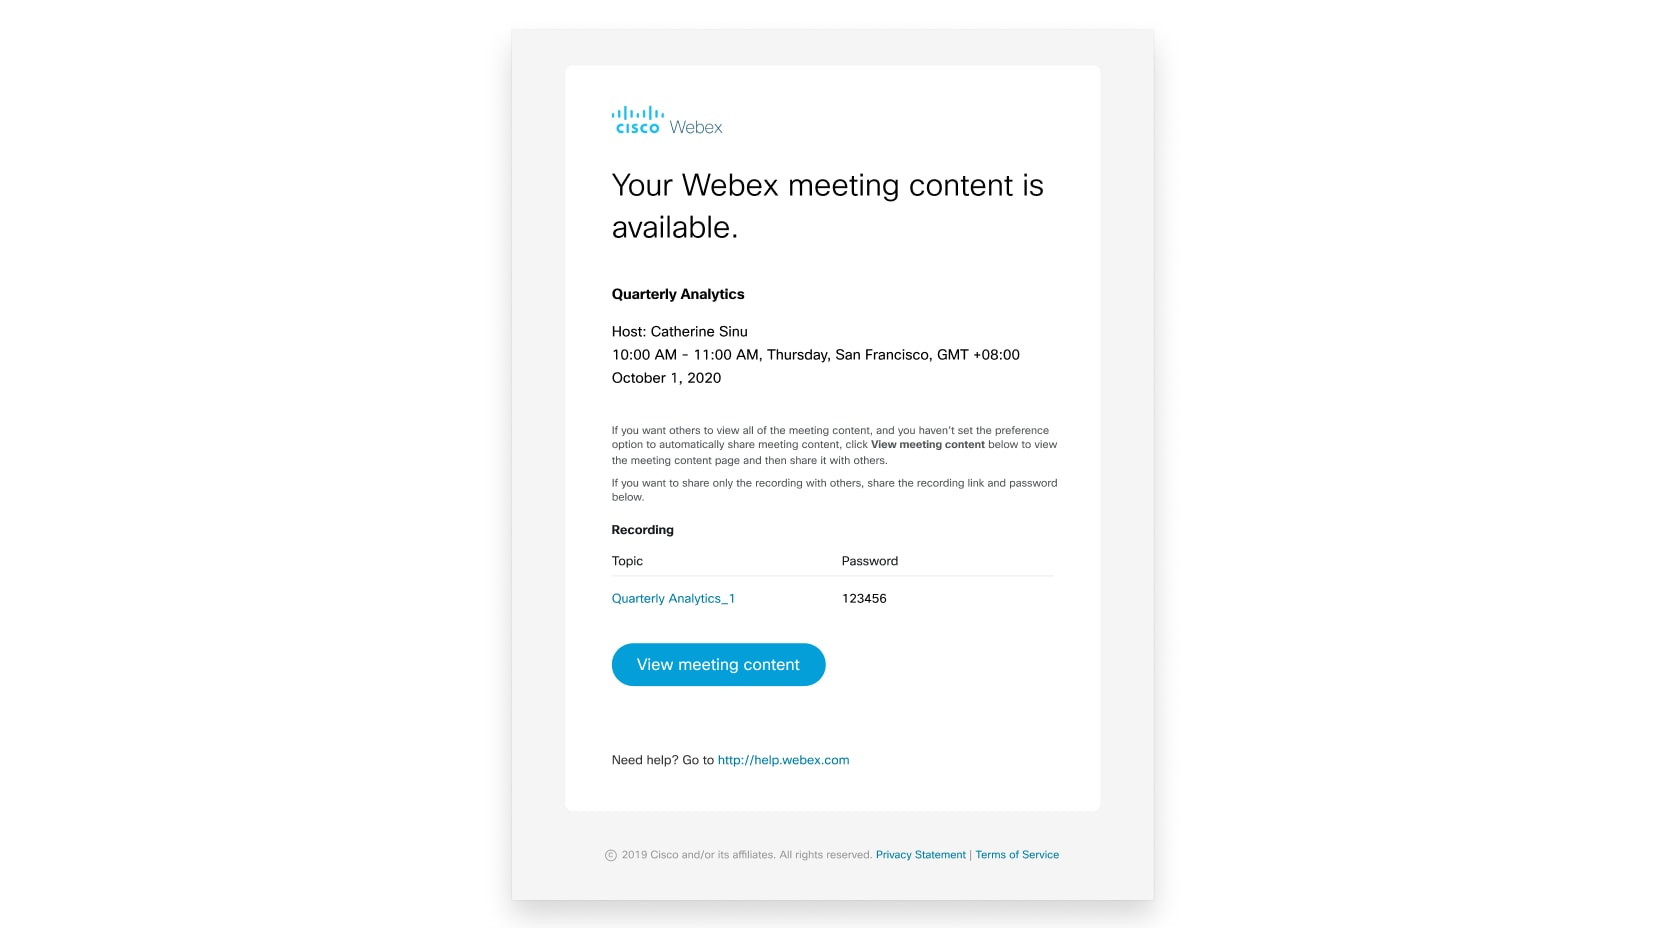 Your meeting content is available email